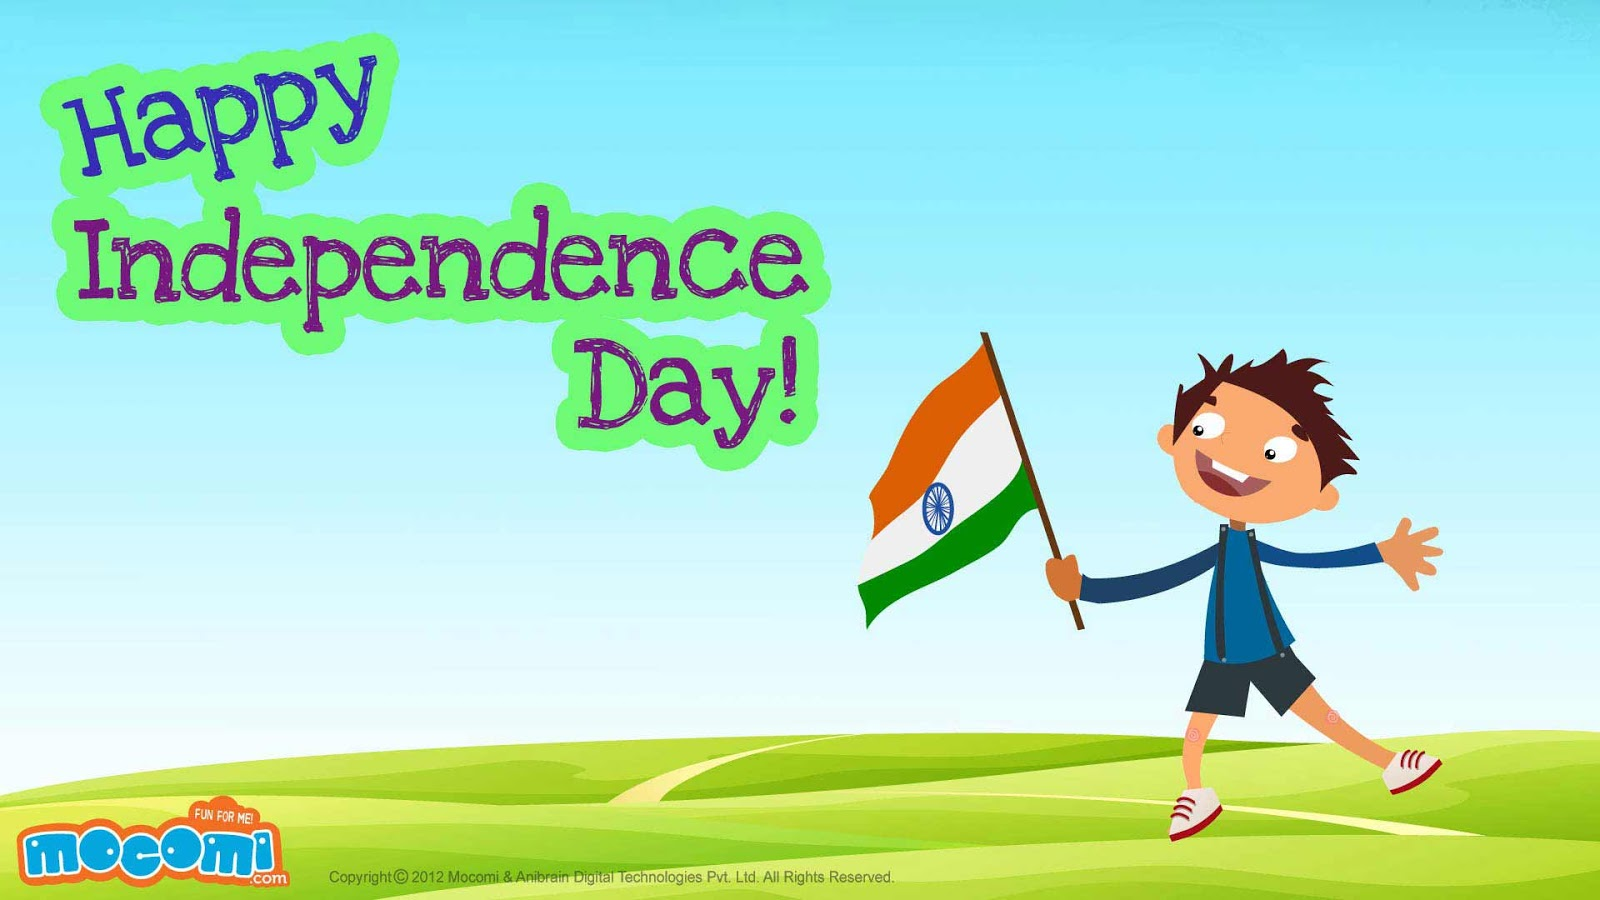 essay co happy independence day essay 2016 15 essay 15 essay independence day